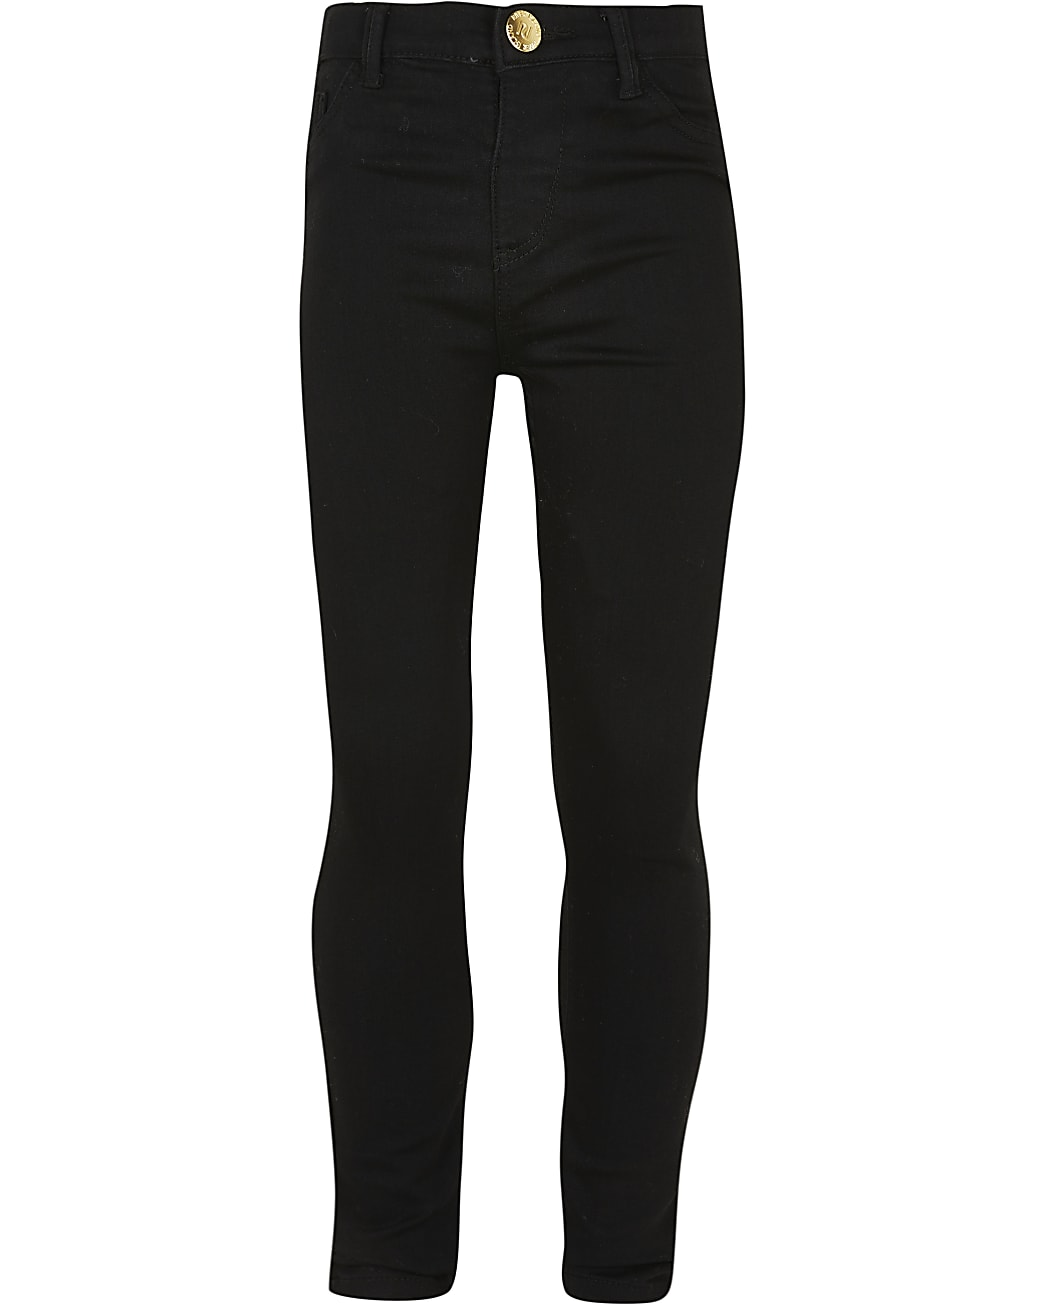 Girls black Molly high rise jeans